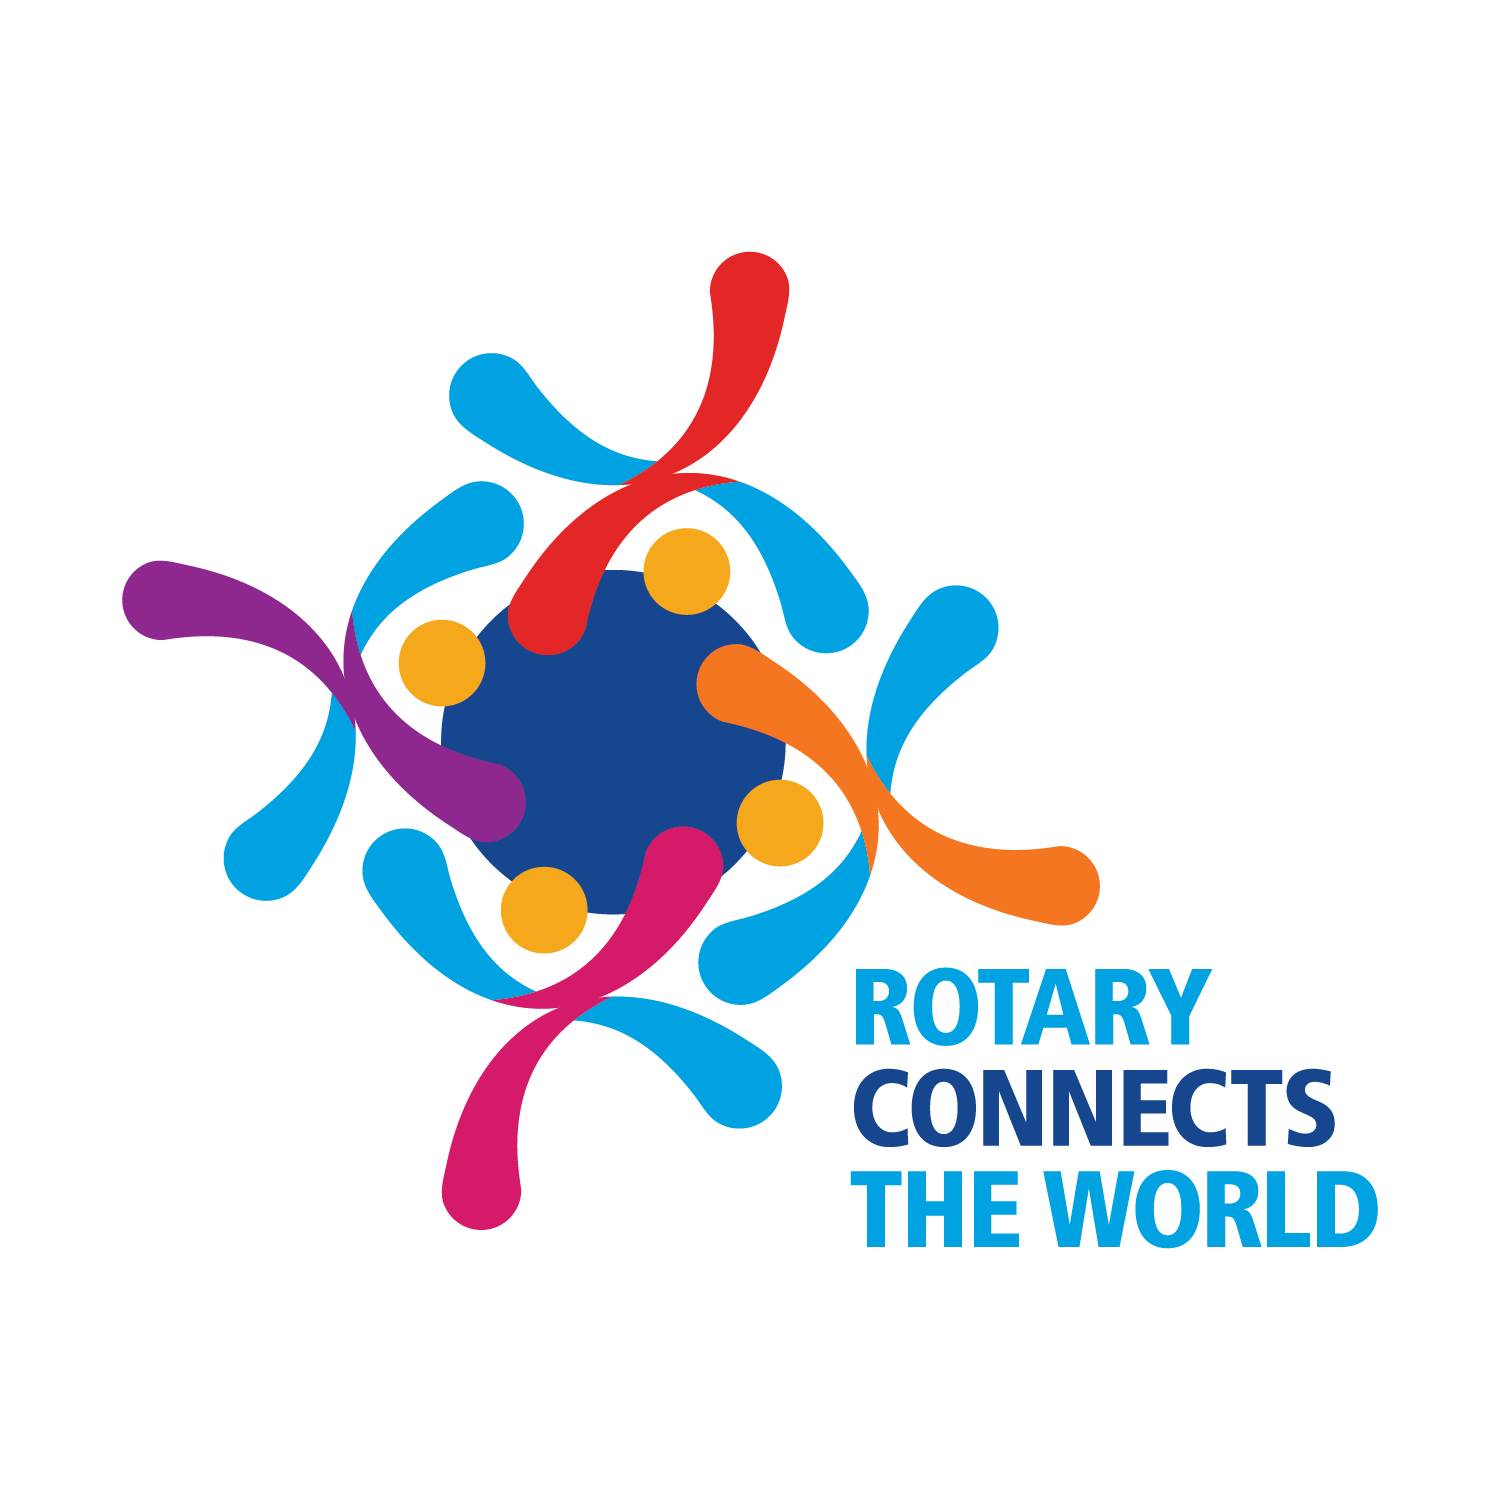 2019 Theme logo: Rotary Connects the World